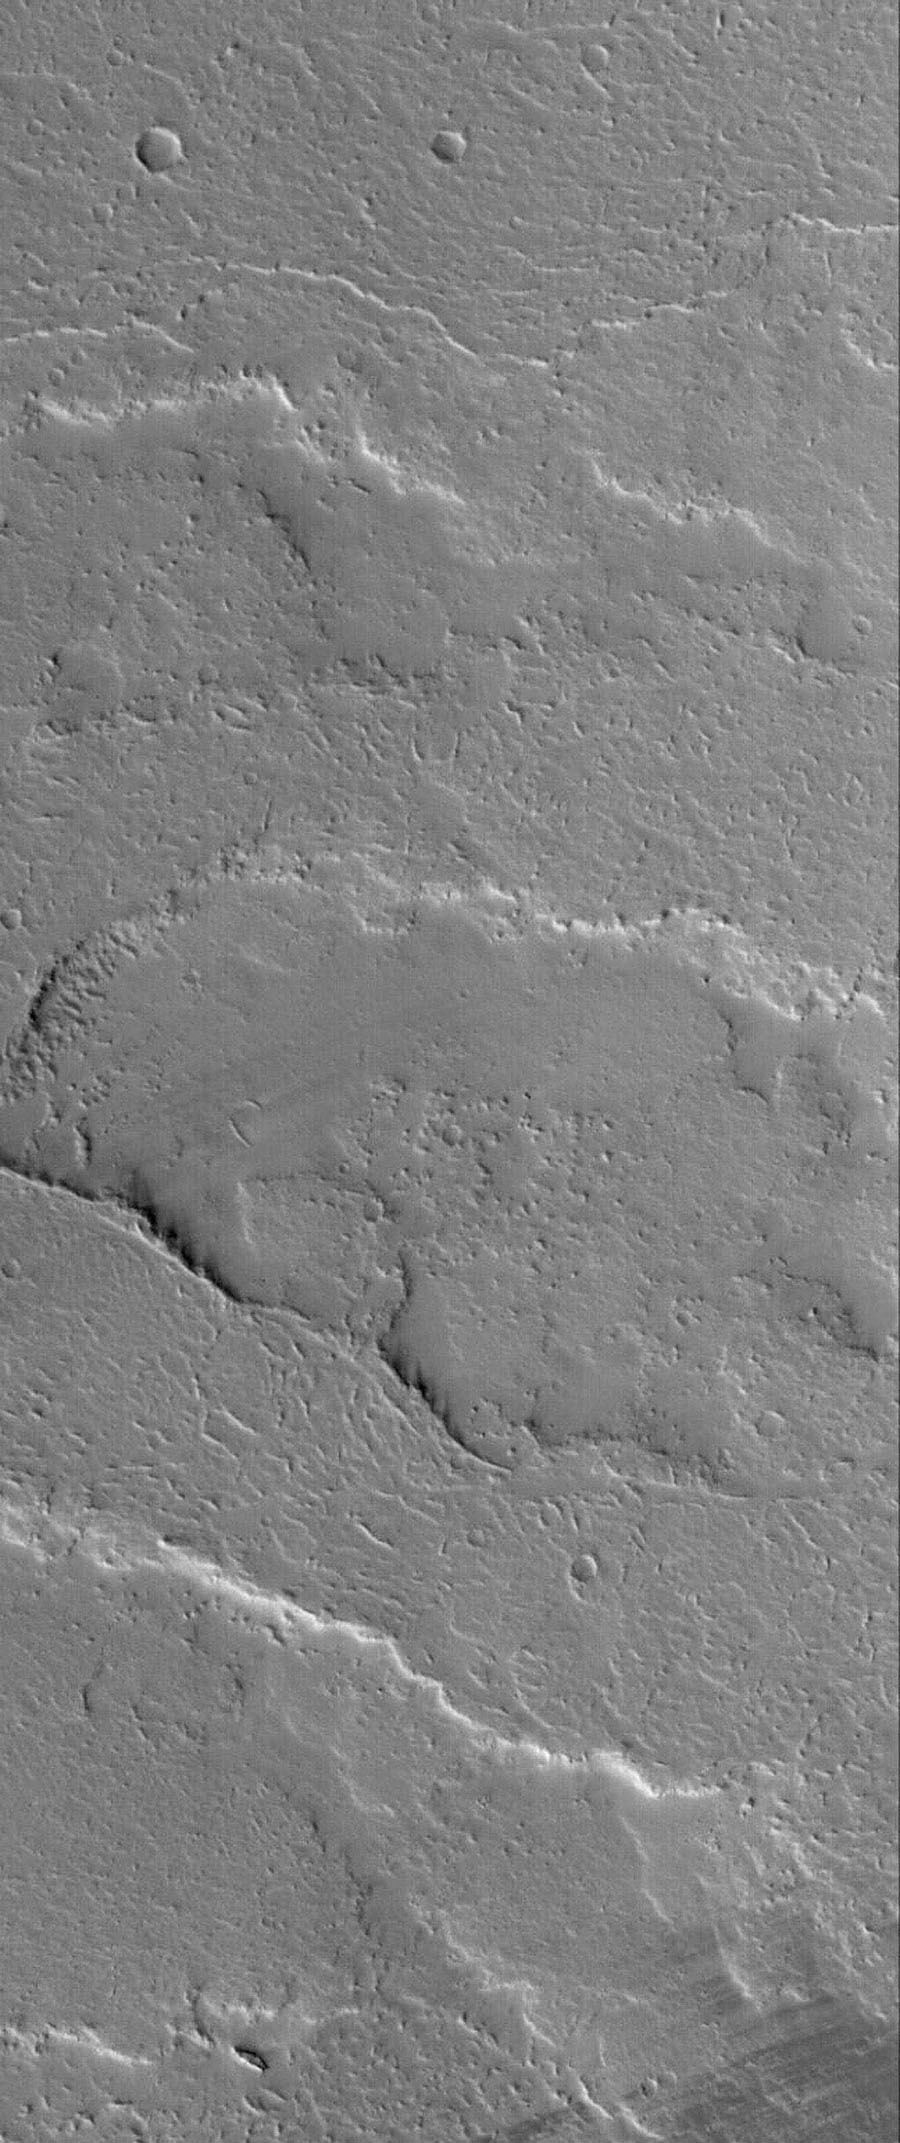 NASA's Mars Global Surveyor shows several overlapping lava flows located on the vast plains east of the volcano, Ascraeus Mons on Mars. Hundreds of lava flows cover the plains from Ascraeus Mons eastward to Kasei Valles.